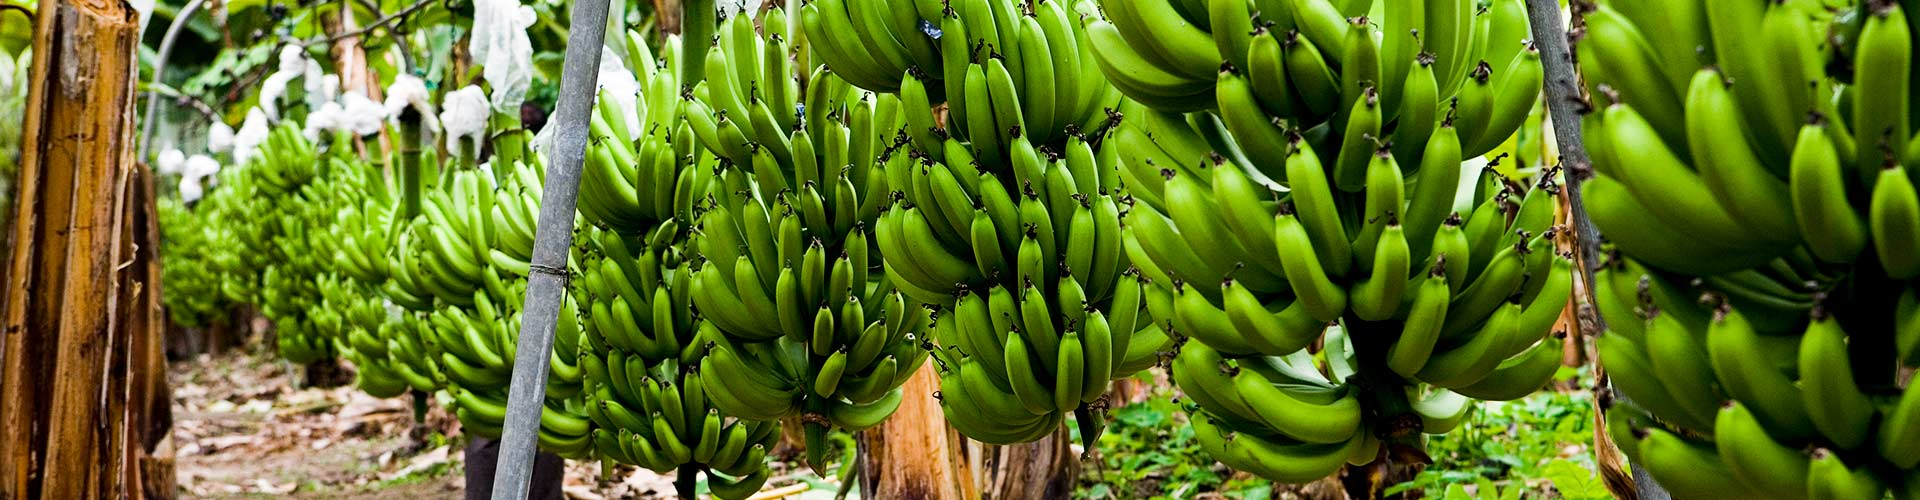 AgroFair-Fairtrade-Bio-Organic-Bananas-Fruit-home-slider-03